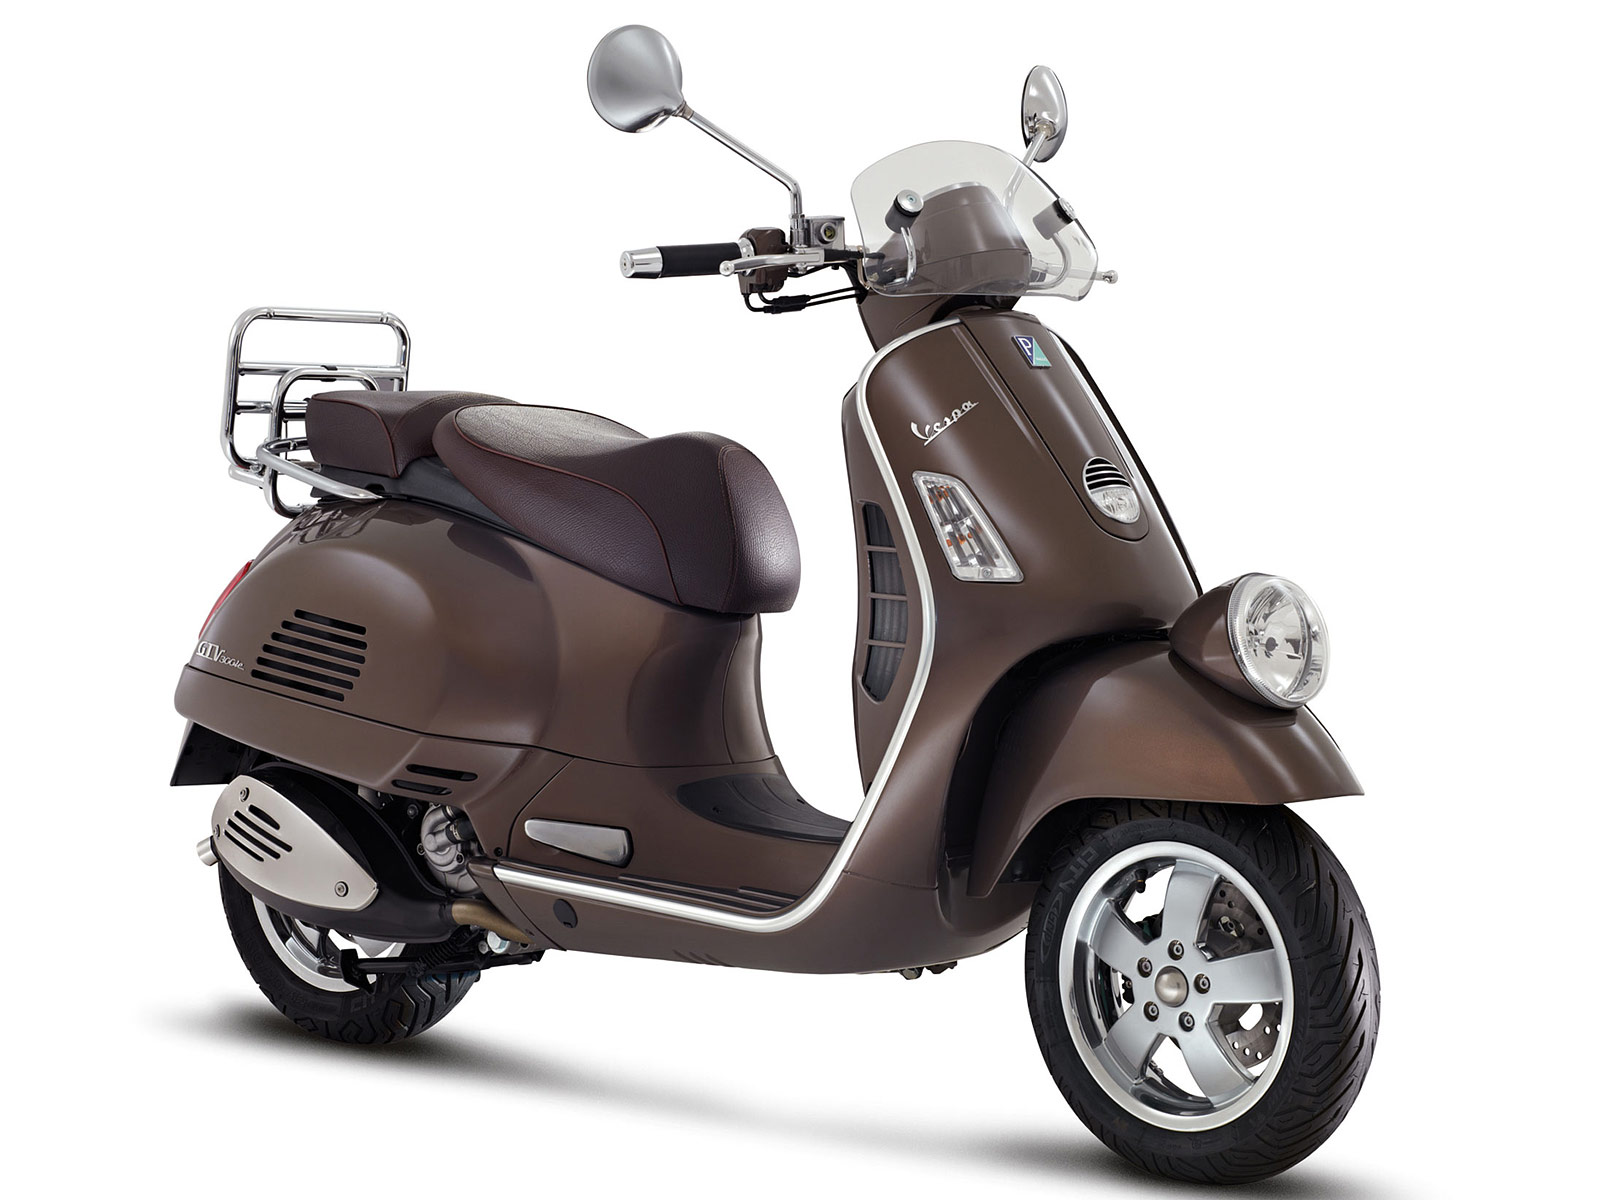 Vespa Scooters Wiring Diagrams Ask Answer Diagram Lml For 1980 P200e Scooter Elsalvadorla 150cc